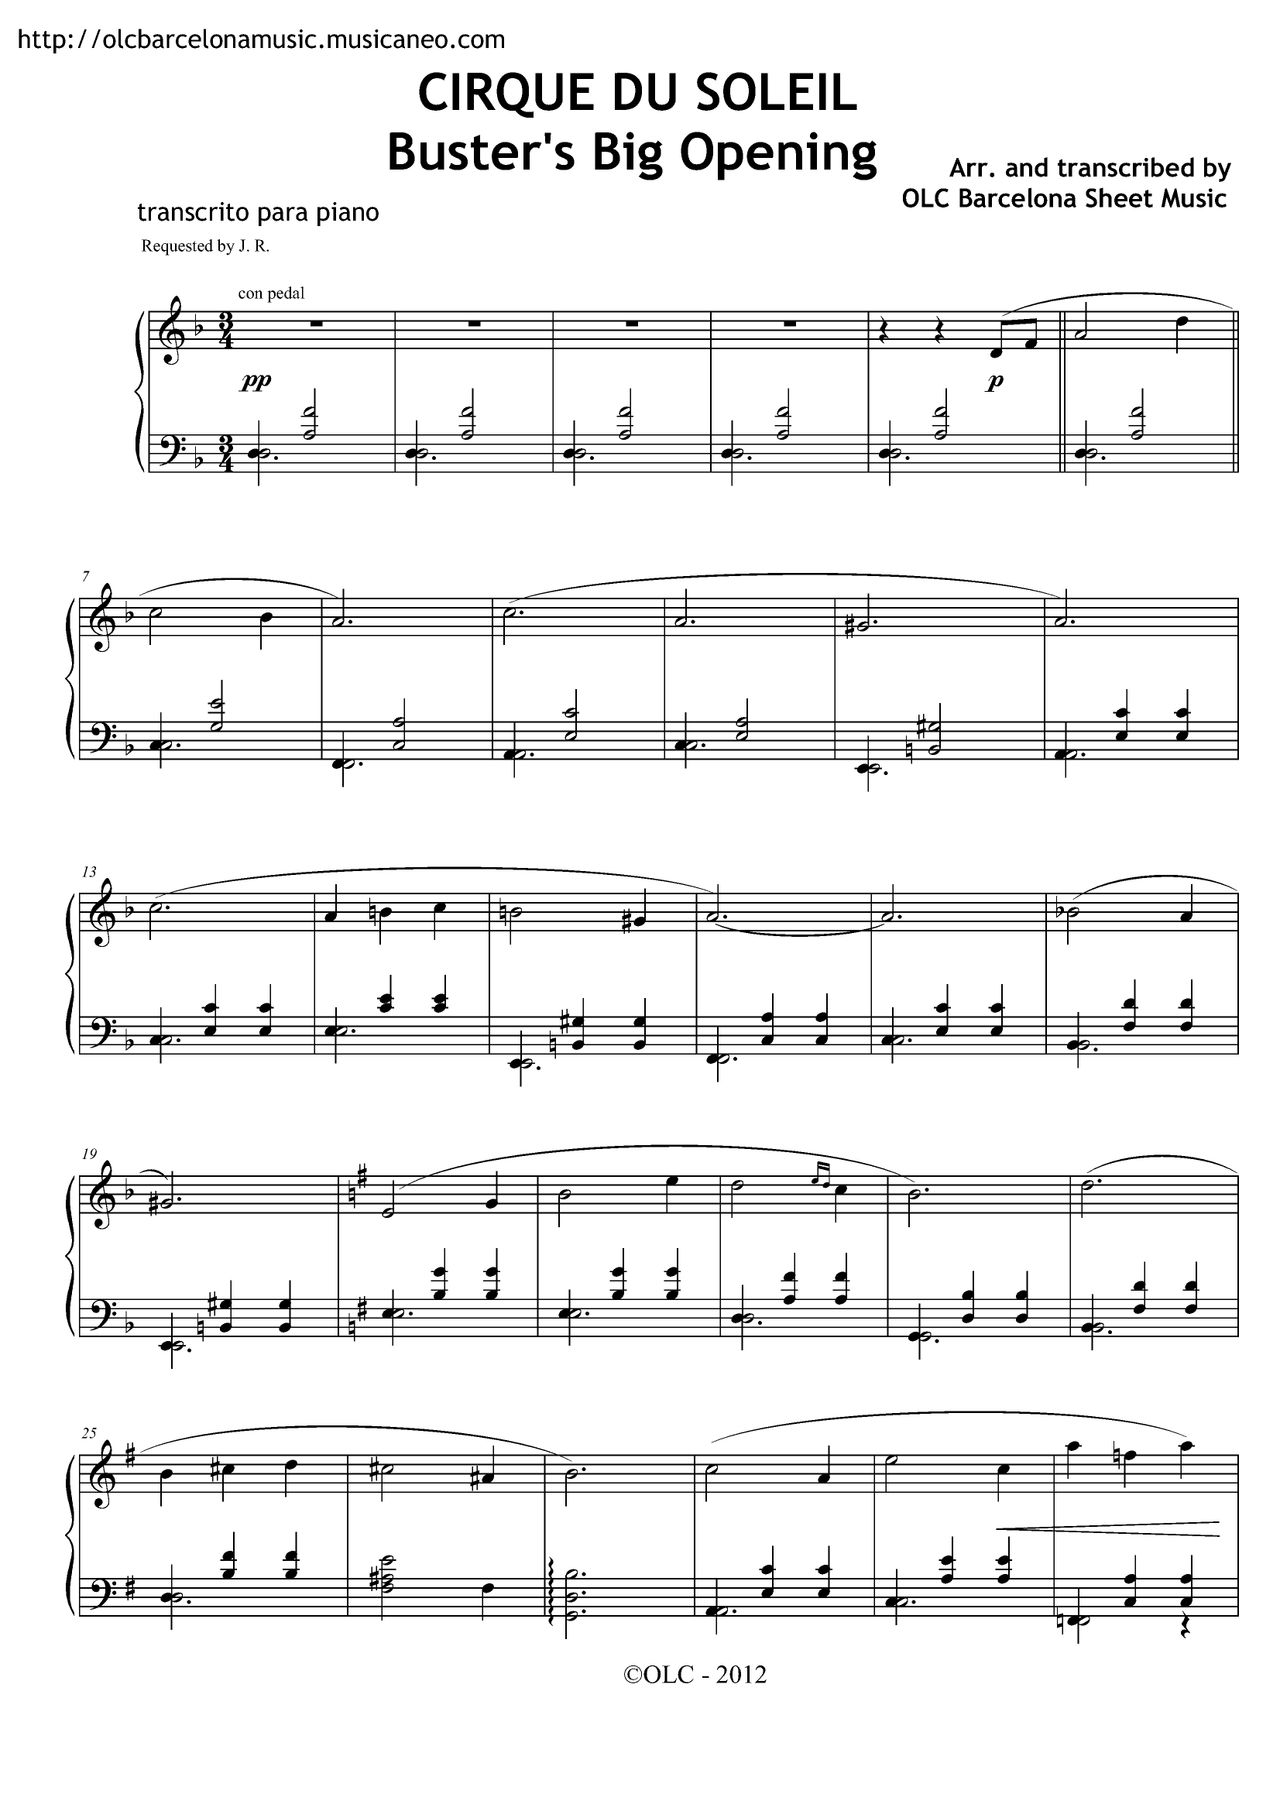 """Cirque du soleil """"Big Buster's Opening"""" sheet music for piano"""